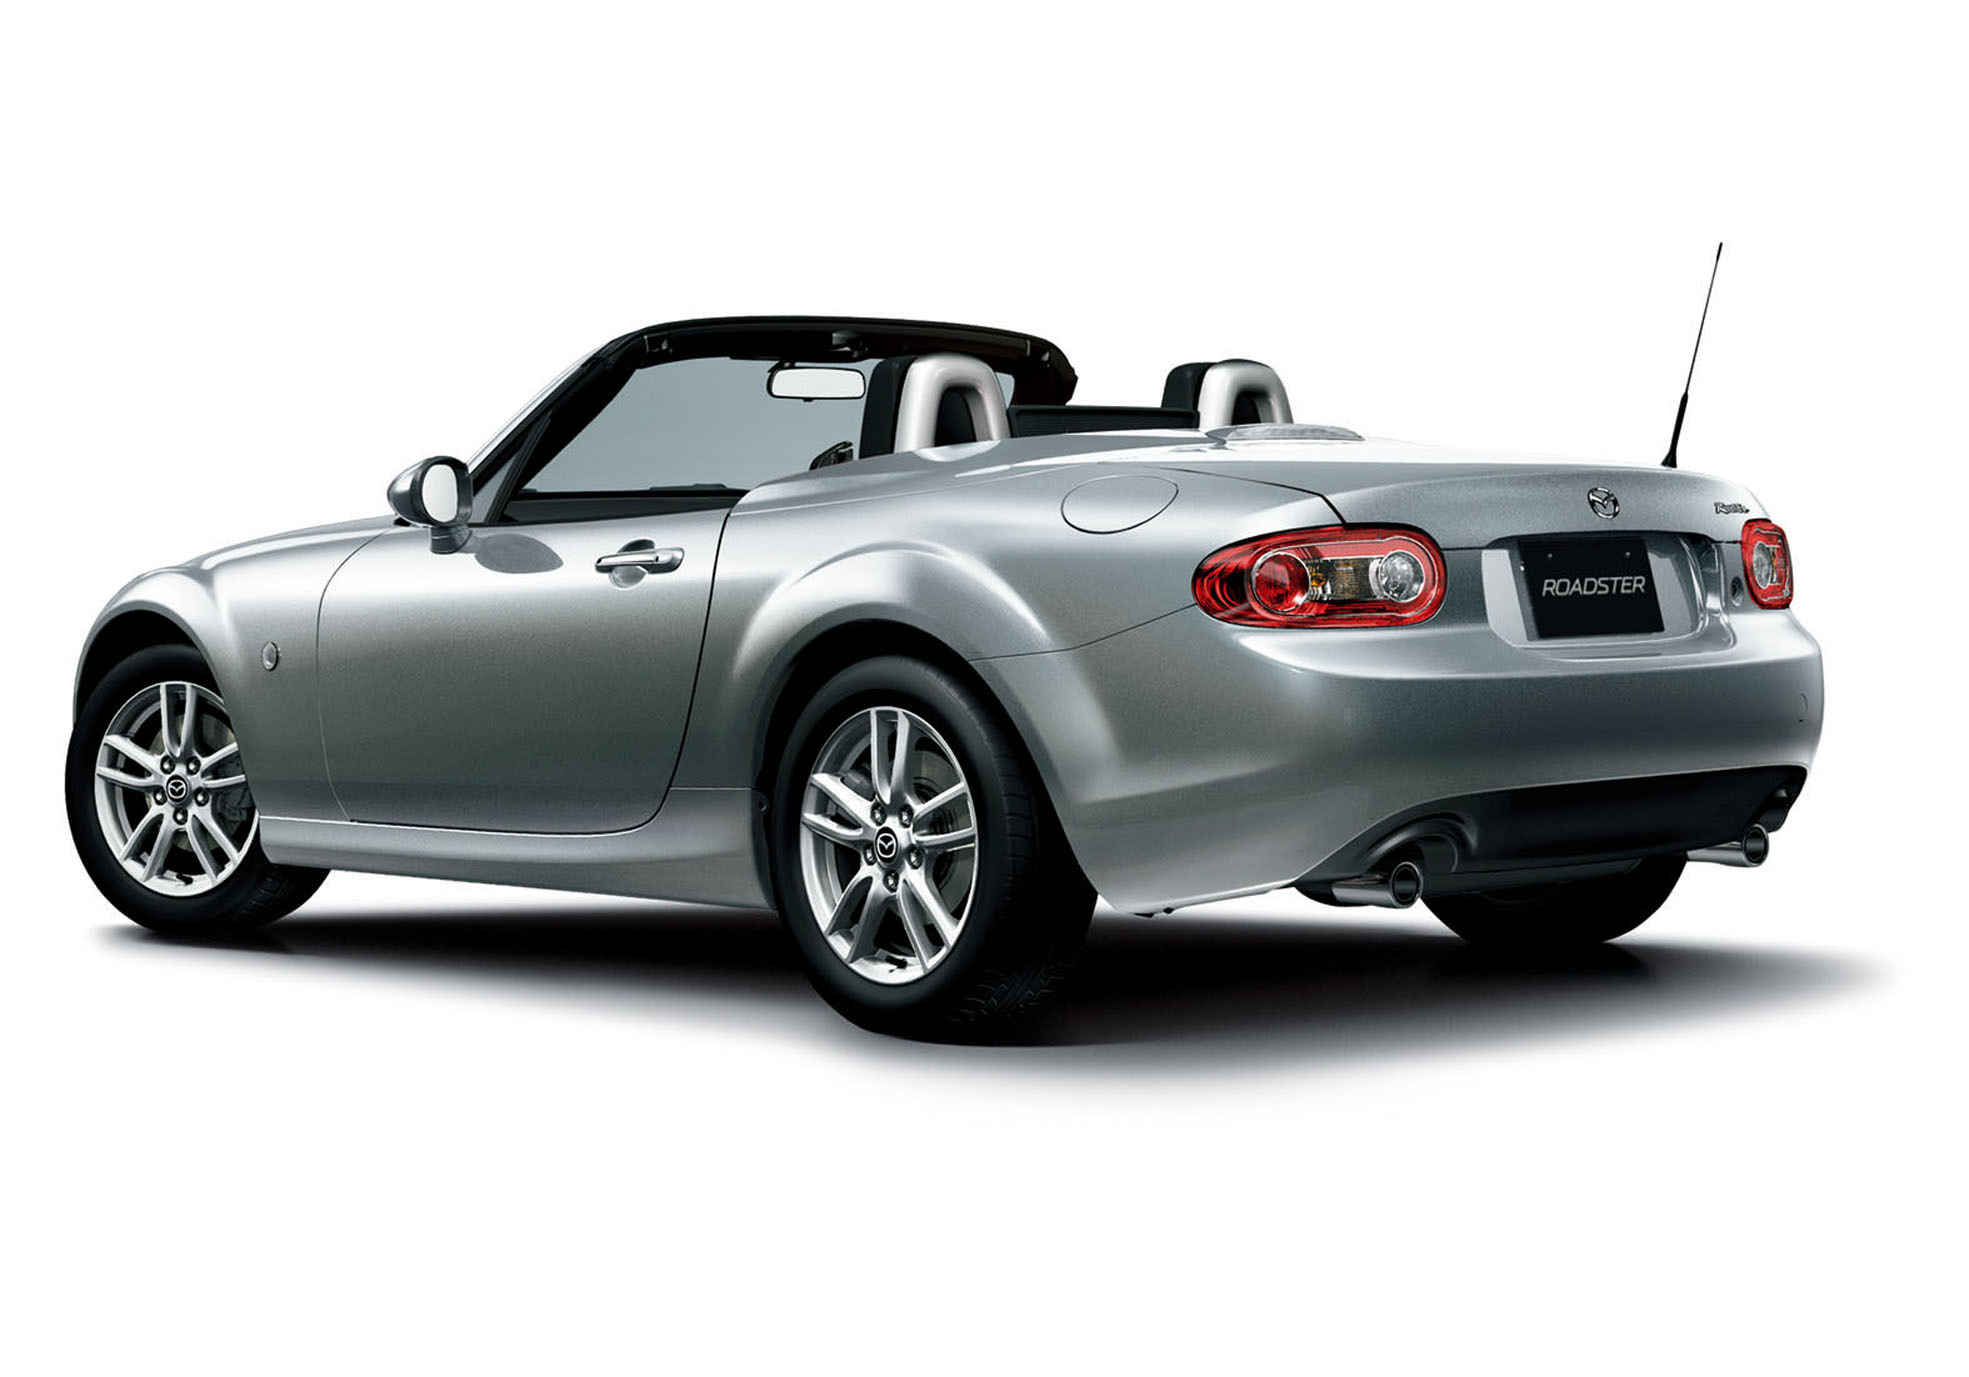 mazda mx 5 et mx 5 roadster coup. Black Bedroom Furniture Sets. Home Design Ideas